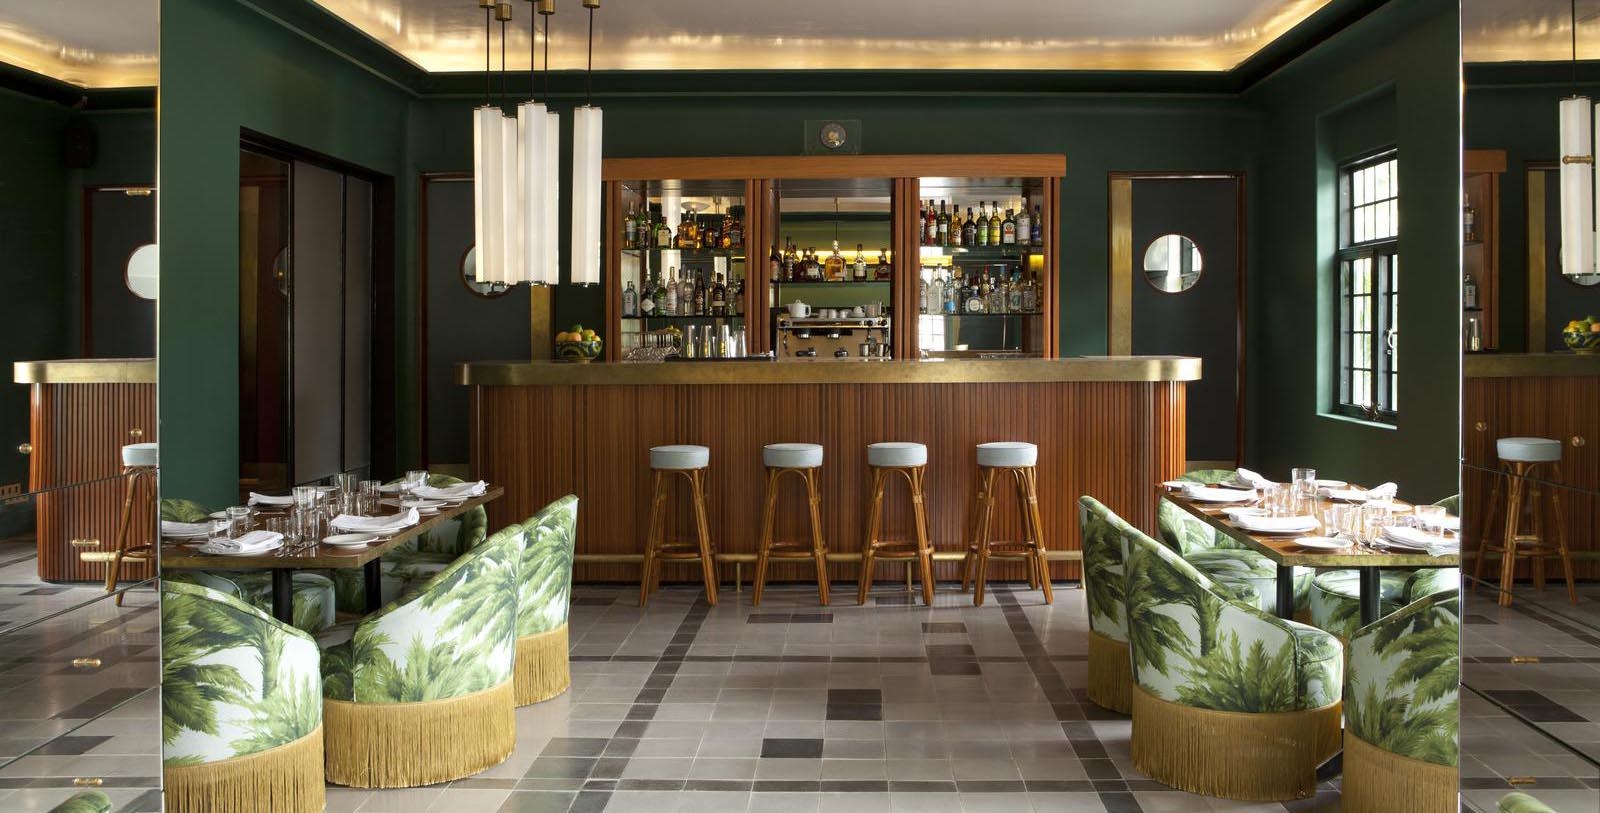 Image of Avenida Chapultepec restauarant bar Casa Habita, 1938, Member of Historic Hotels Worldwide, in Guadalajara, Mexico, Taste